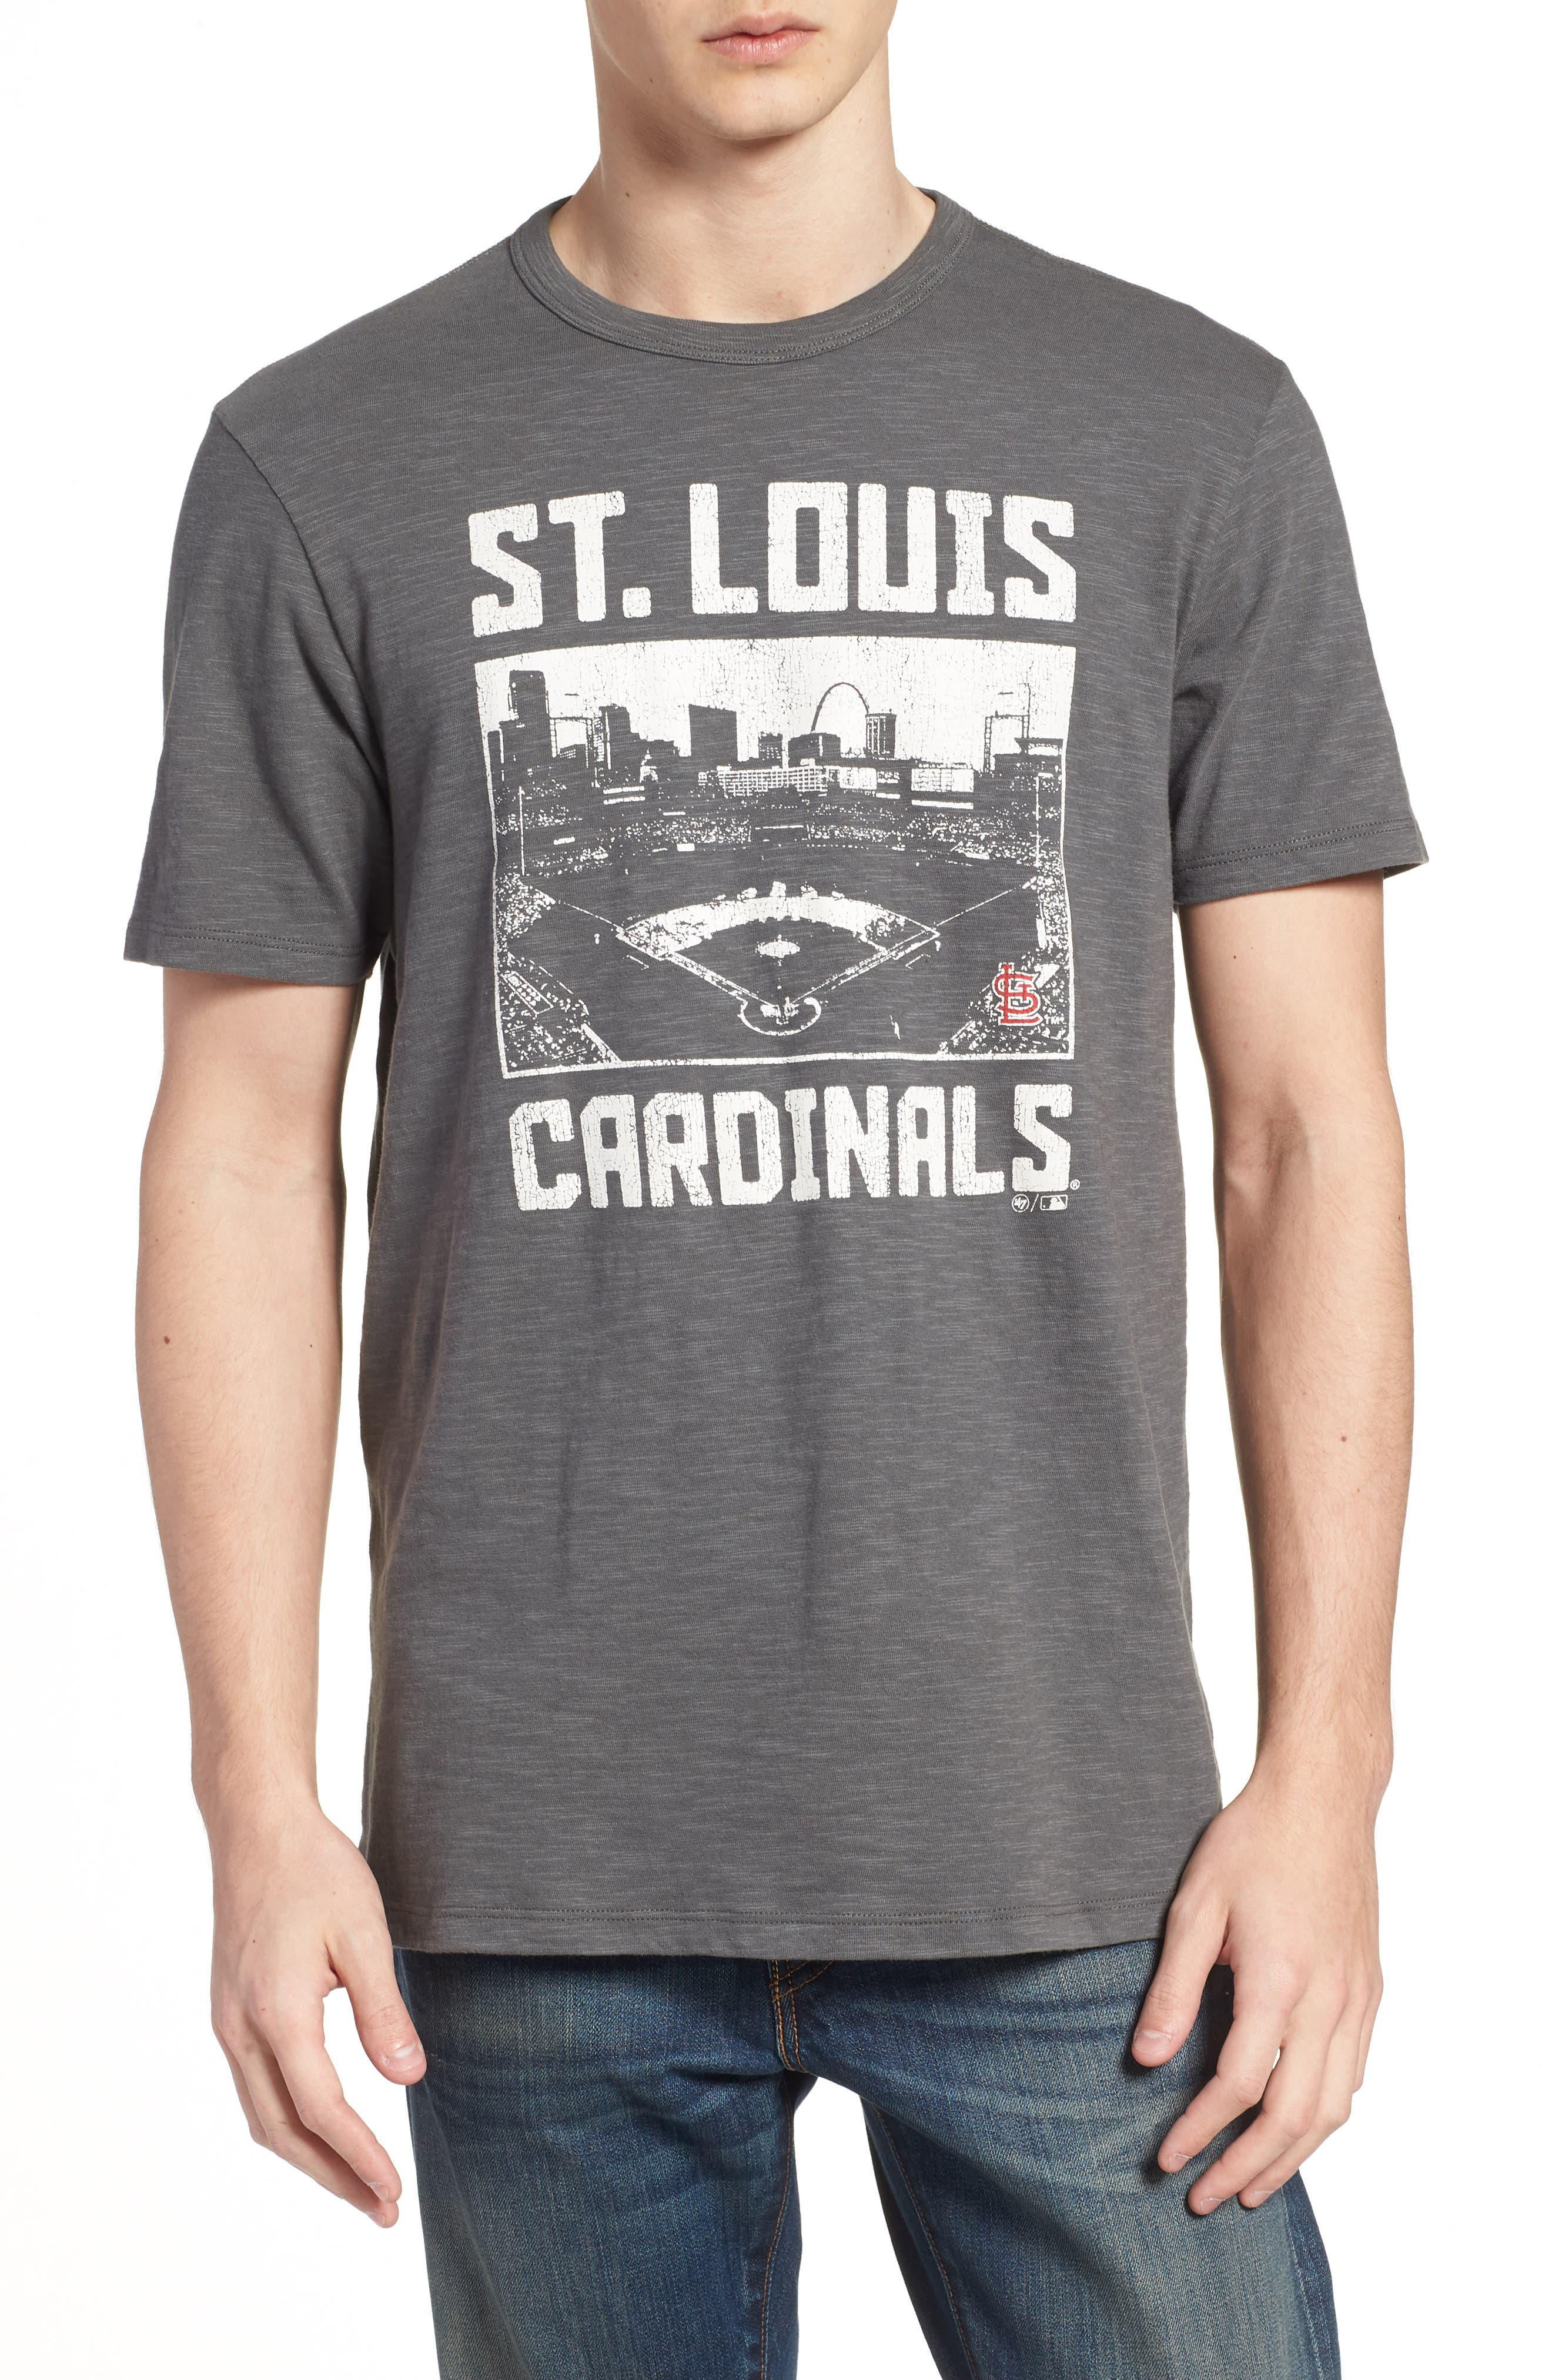 MLB Overdrive Scrum St. Louis Cardinals T-Shirt,                             Main thumbnail 1, color,                             SUBMARINE